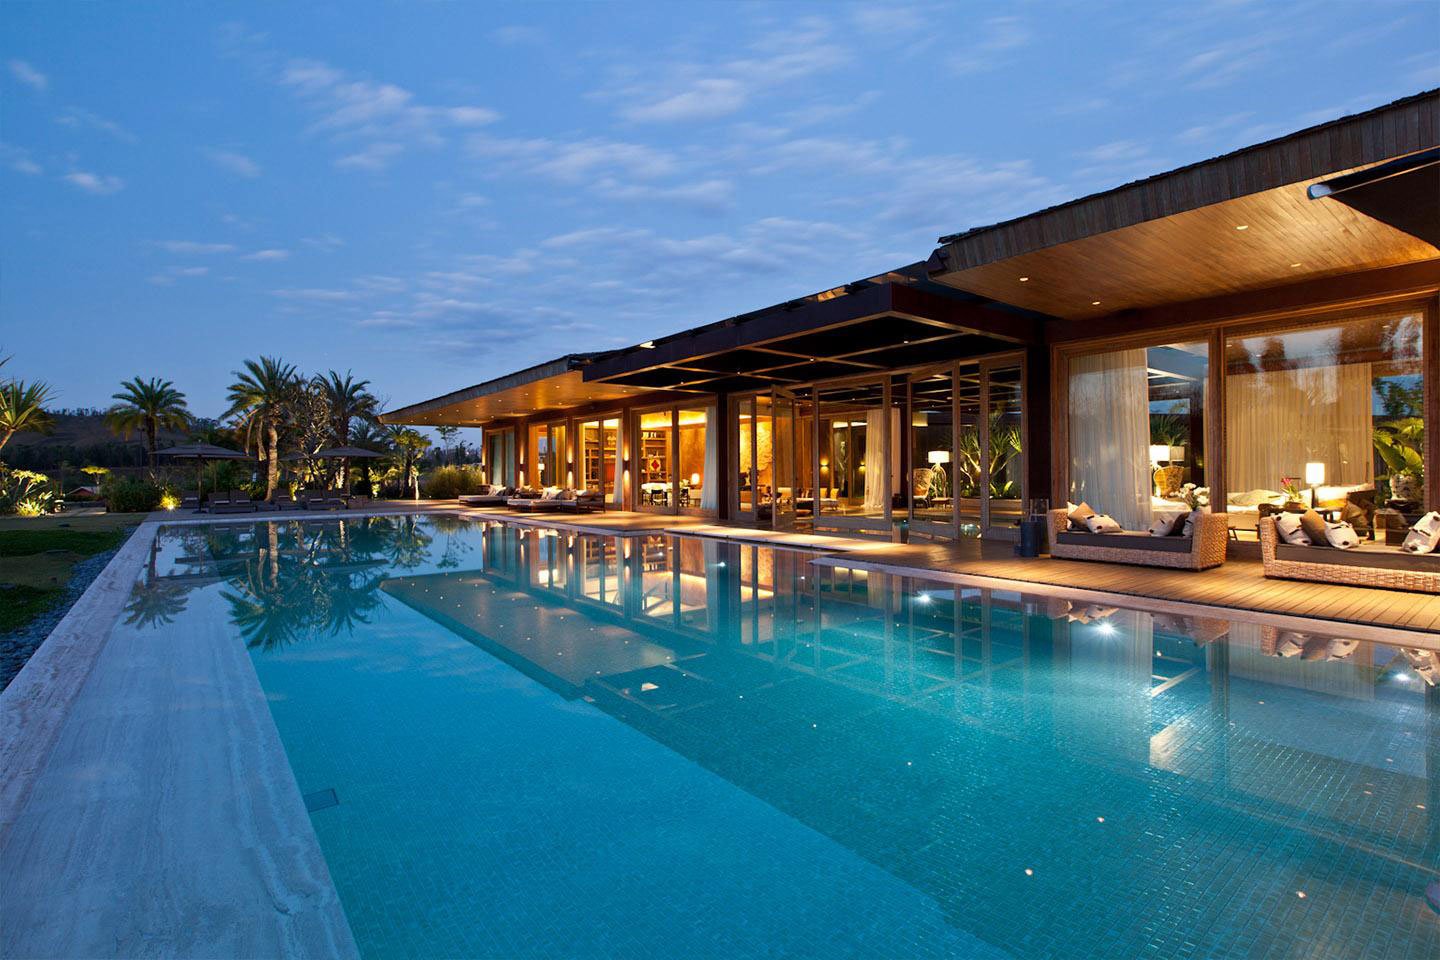 Large Pool, Lighting, House in Nova Lima, Brazil